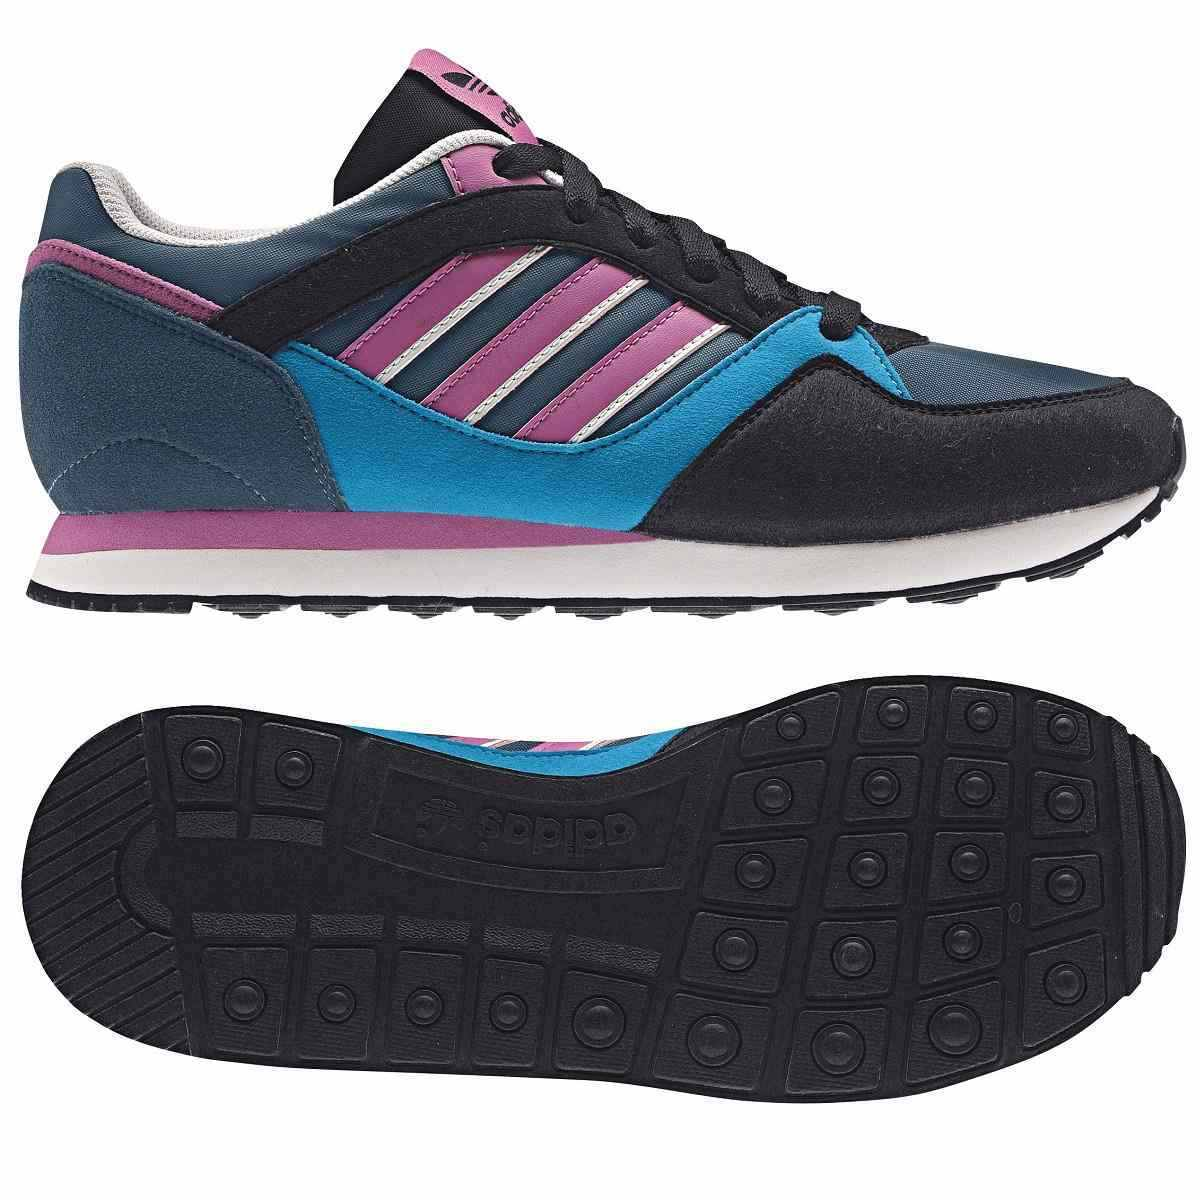 adidas zx 100 schuhe turnschuhe sneaker damen wei schwarz. Black Bedroom Furniture Sets. Home Design Ideas